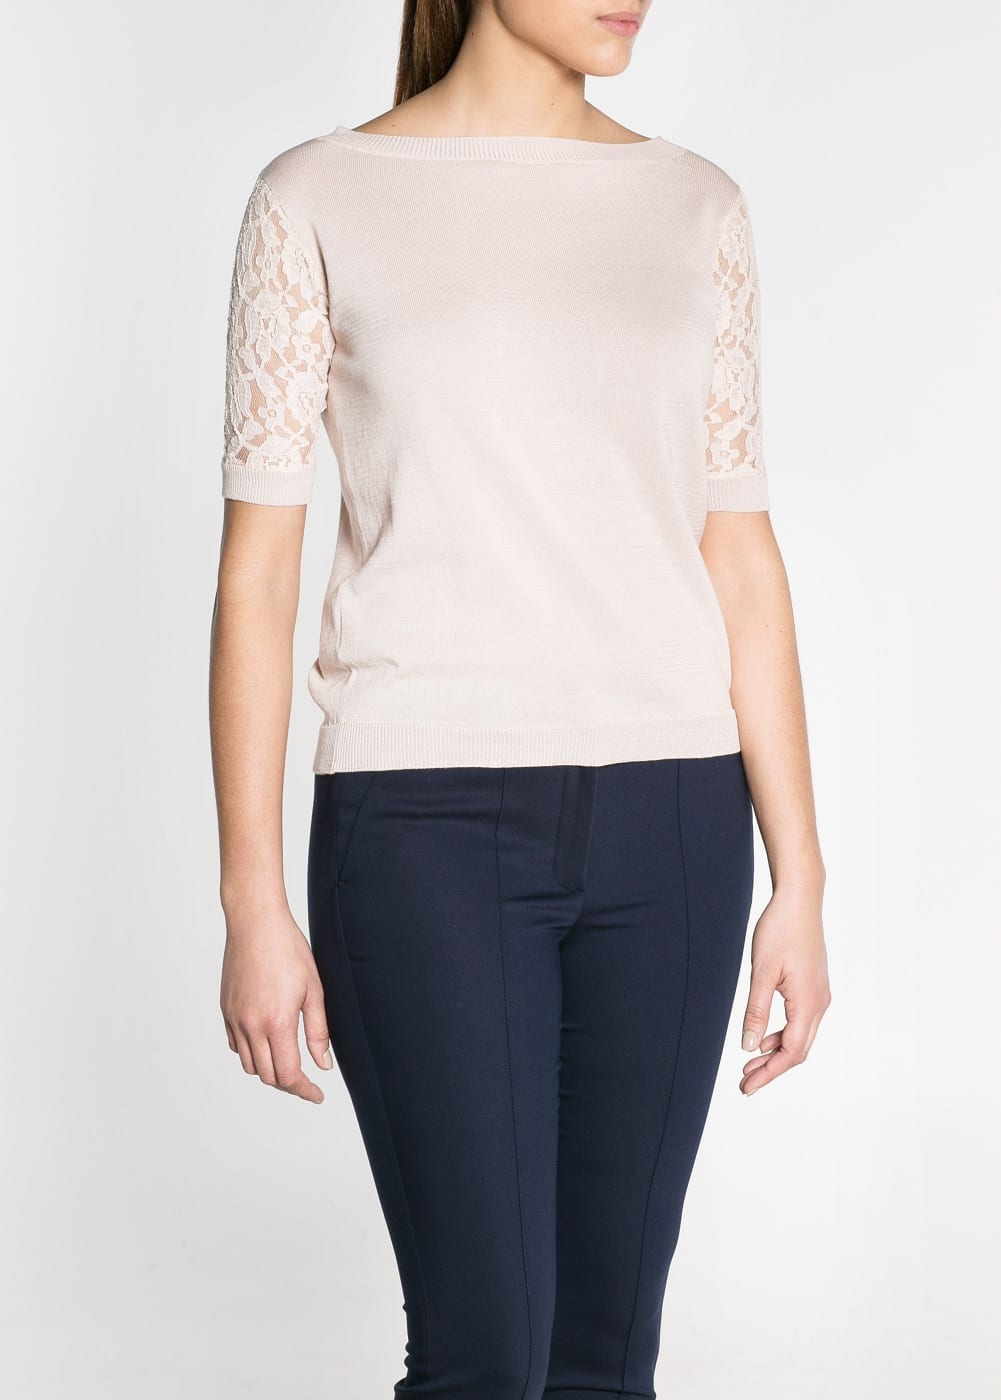 Blond lace sleeve sweater